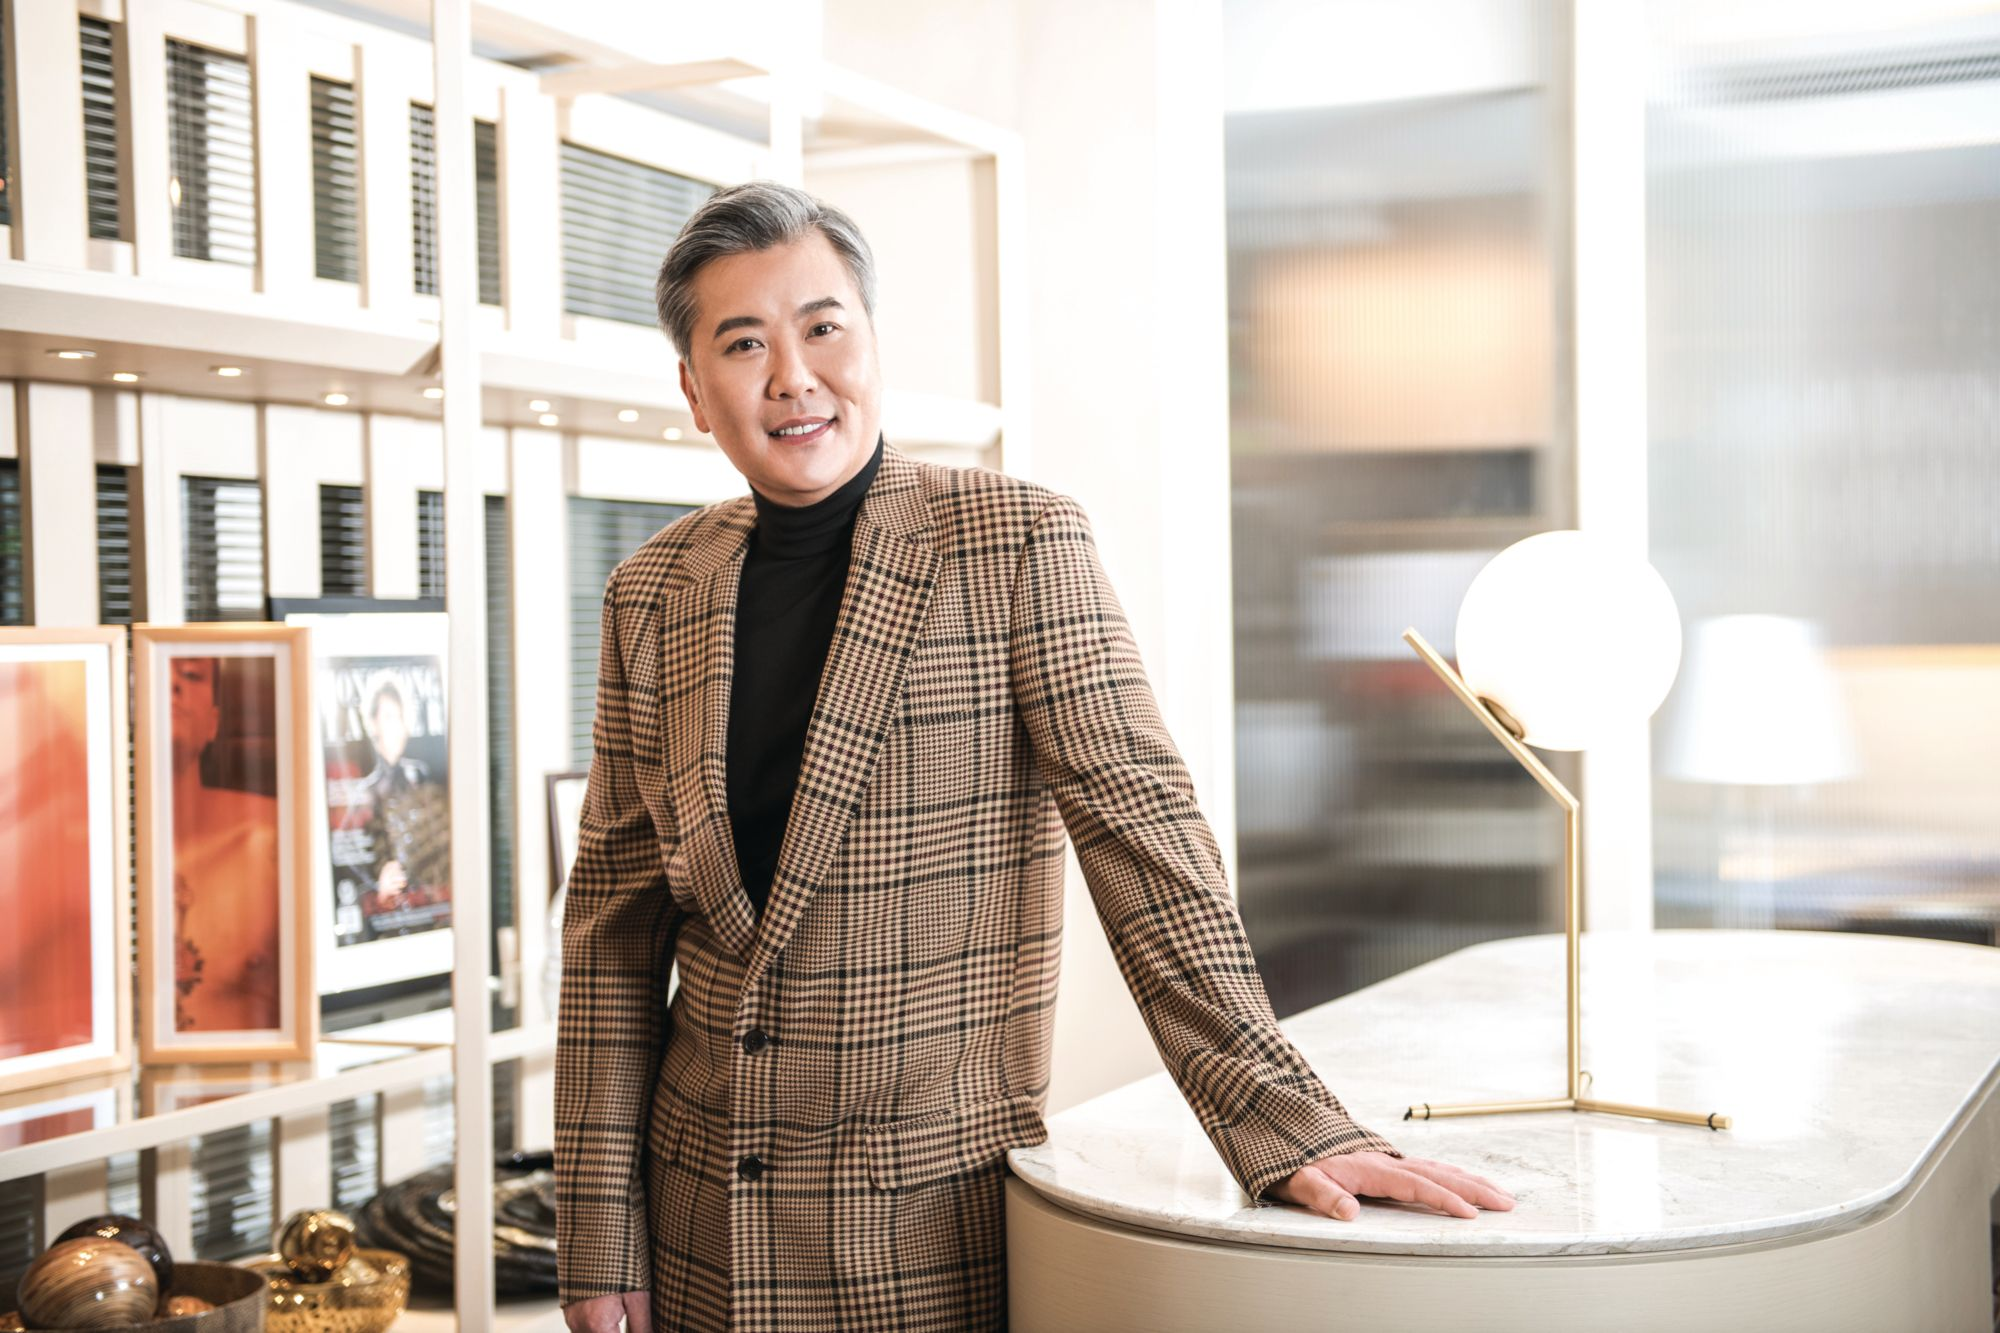 Peter Cheung's Hot List: The Most Iconic Moments In Hong Kong Fashion